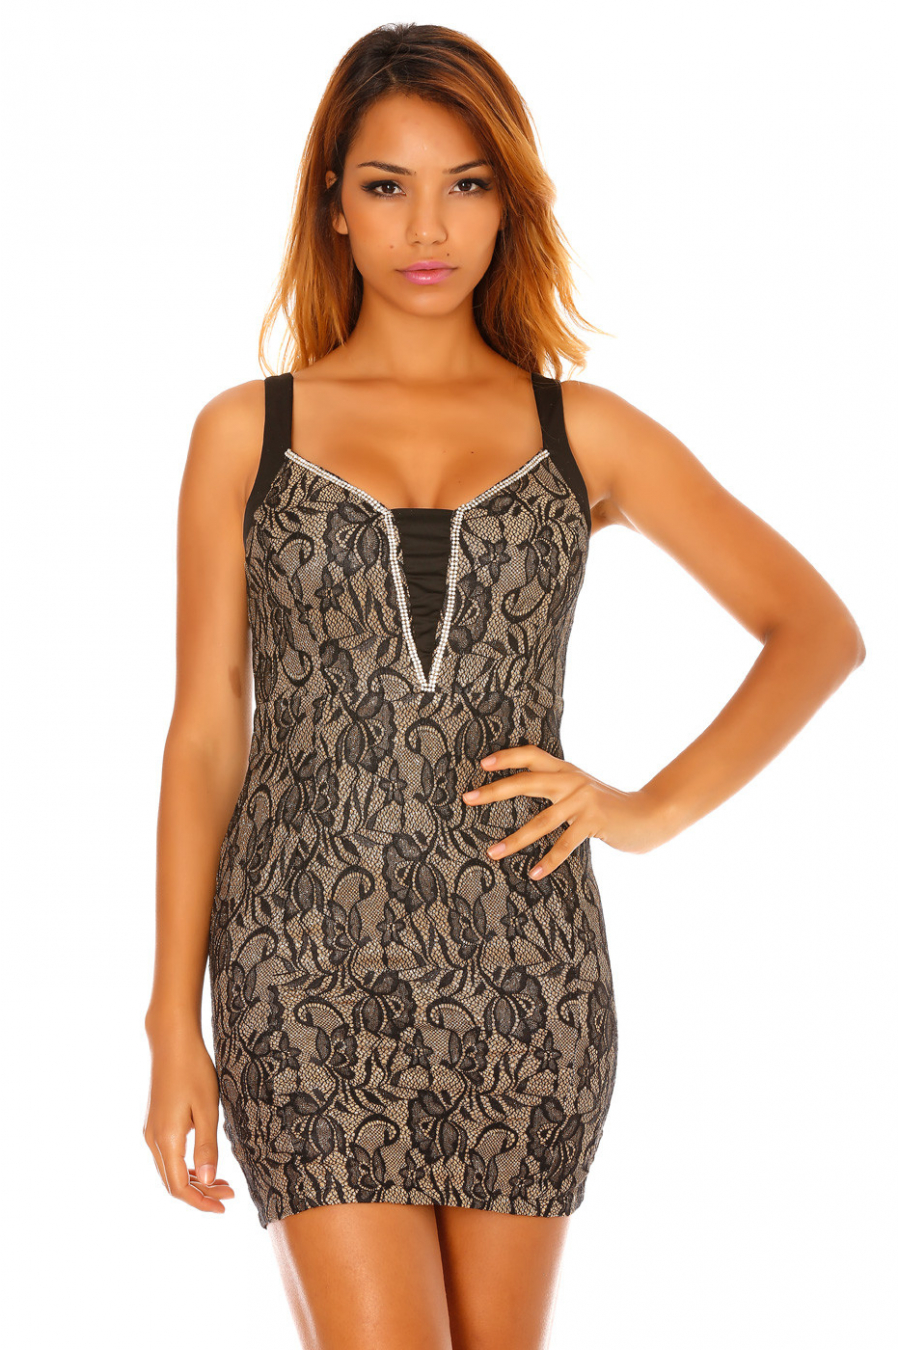 Bodycon black evening dress with gold background and black lace, rhinestones on the neckline. 5580